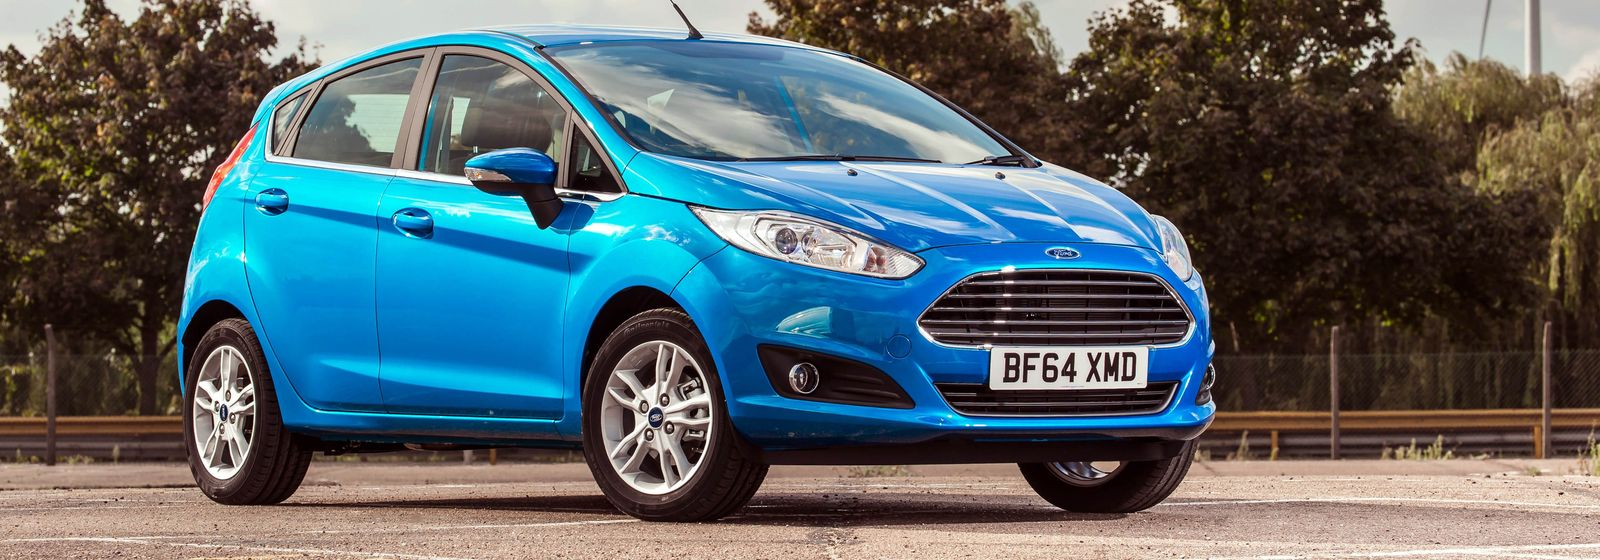 Pearl blue car paint colors - Ford Fiesta In Candy Blue A Special Paint With A Tinted Clearcoat